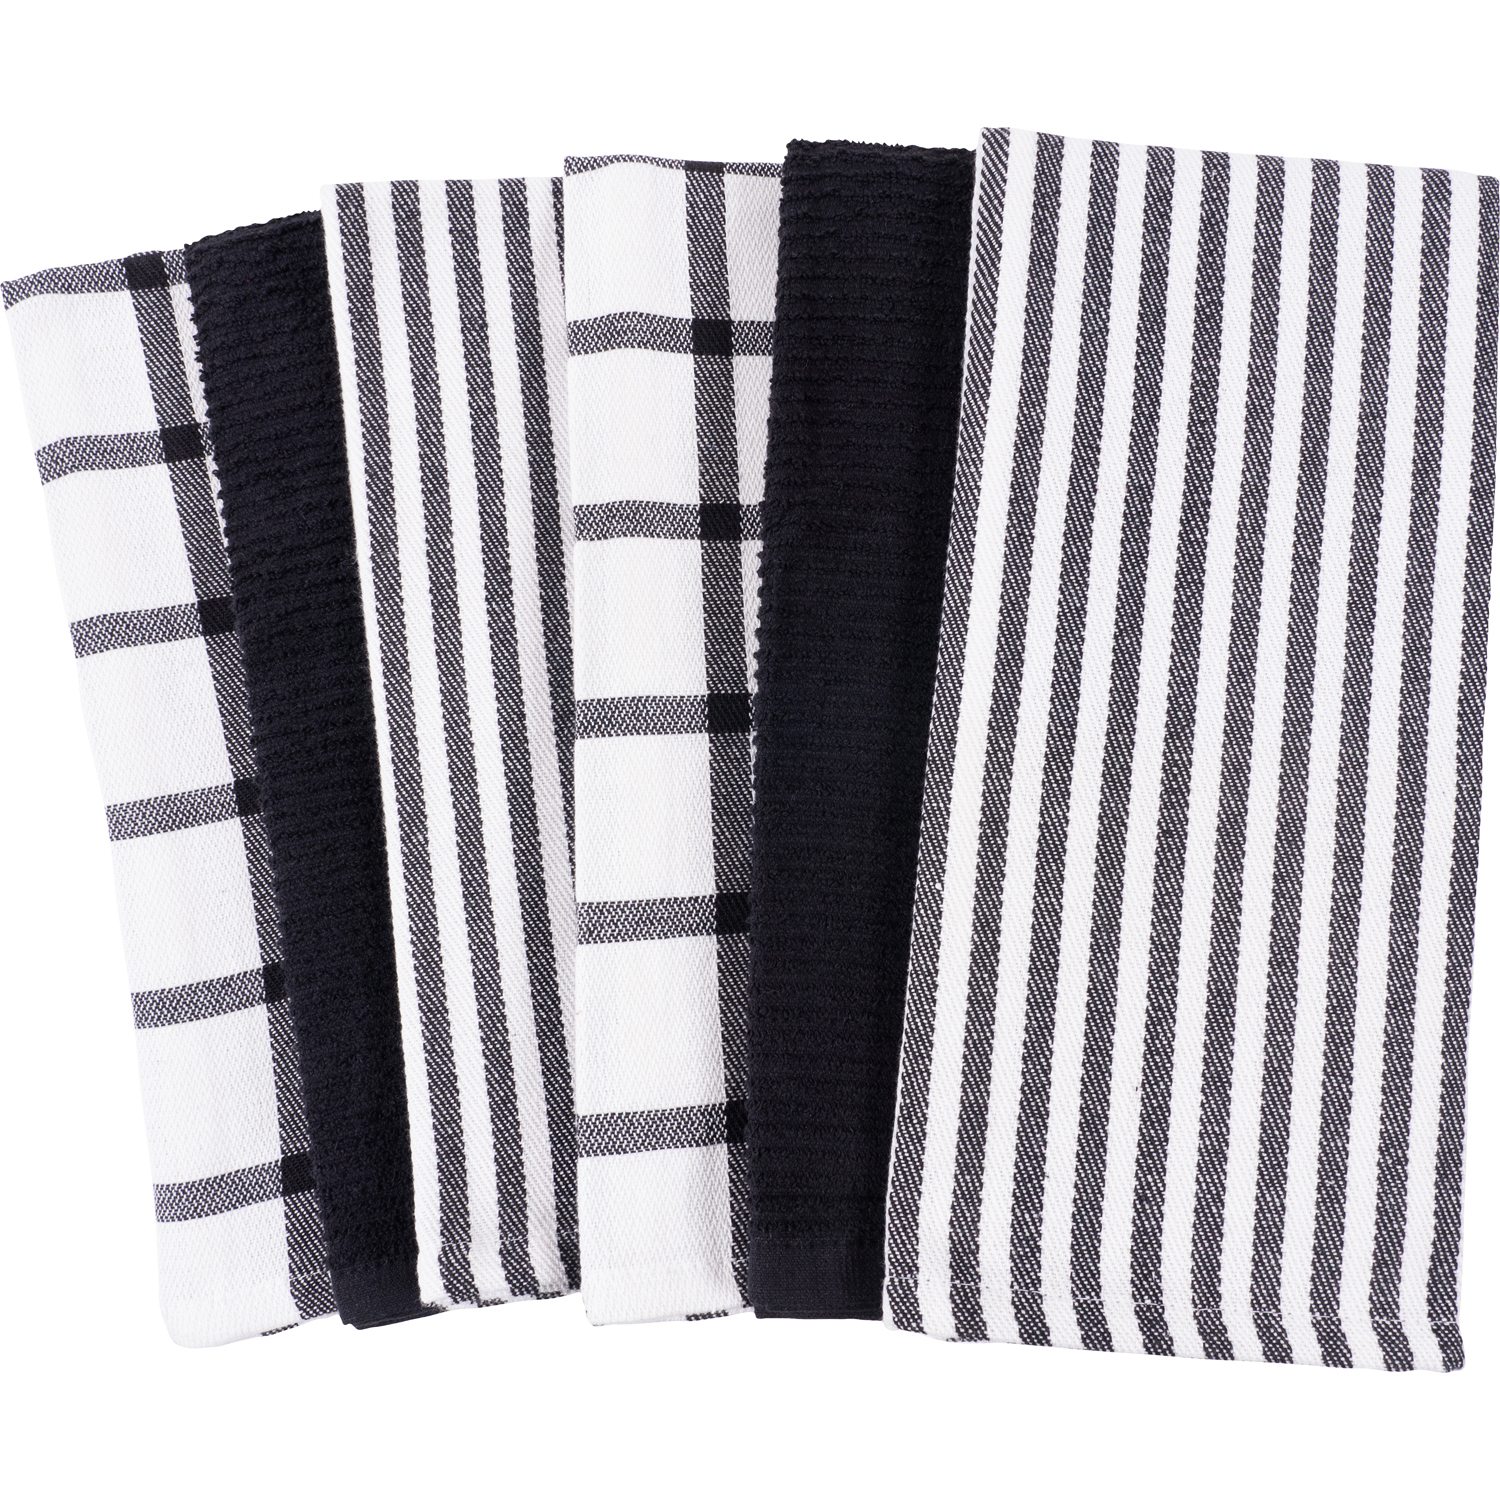 Black Mixed  Terry Kitchen Towel Set of 6